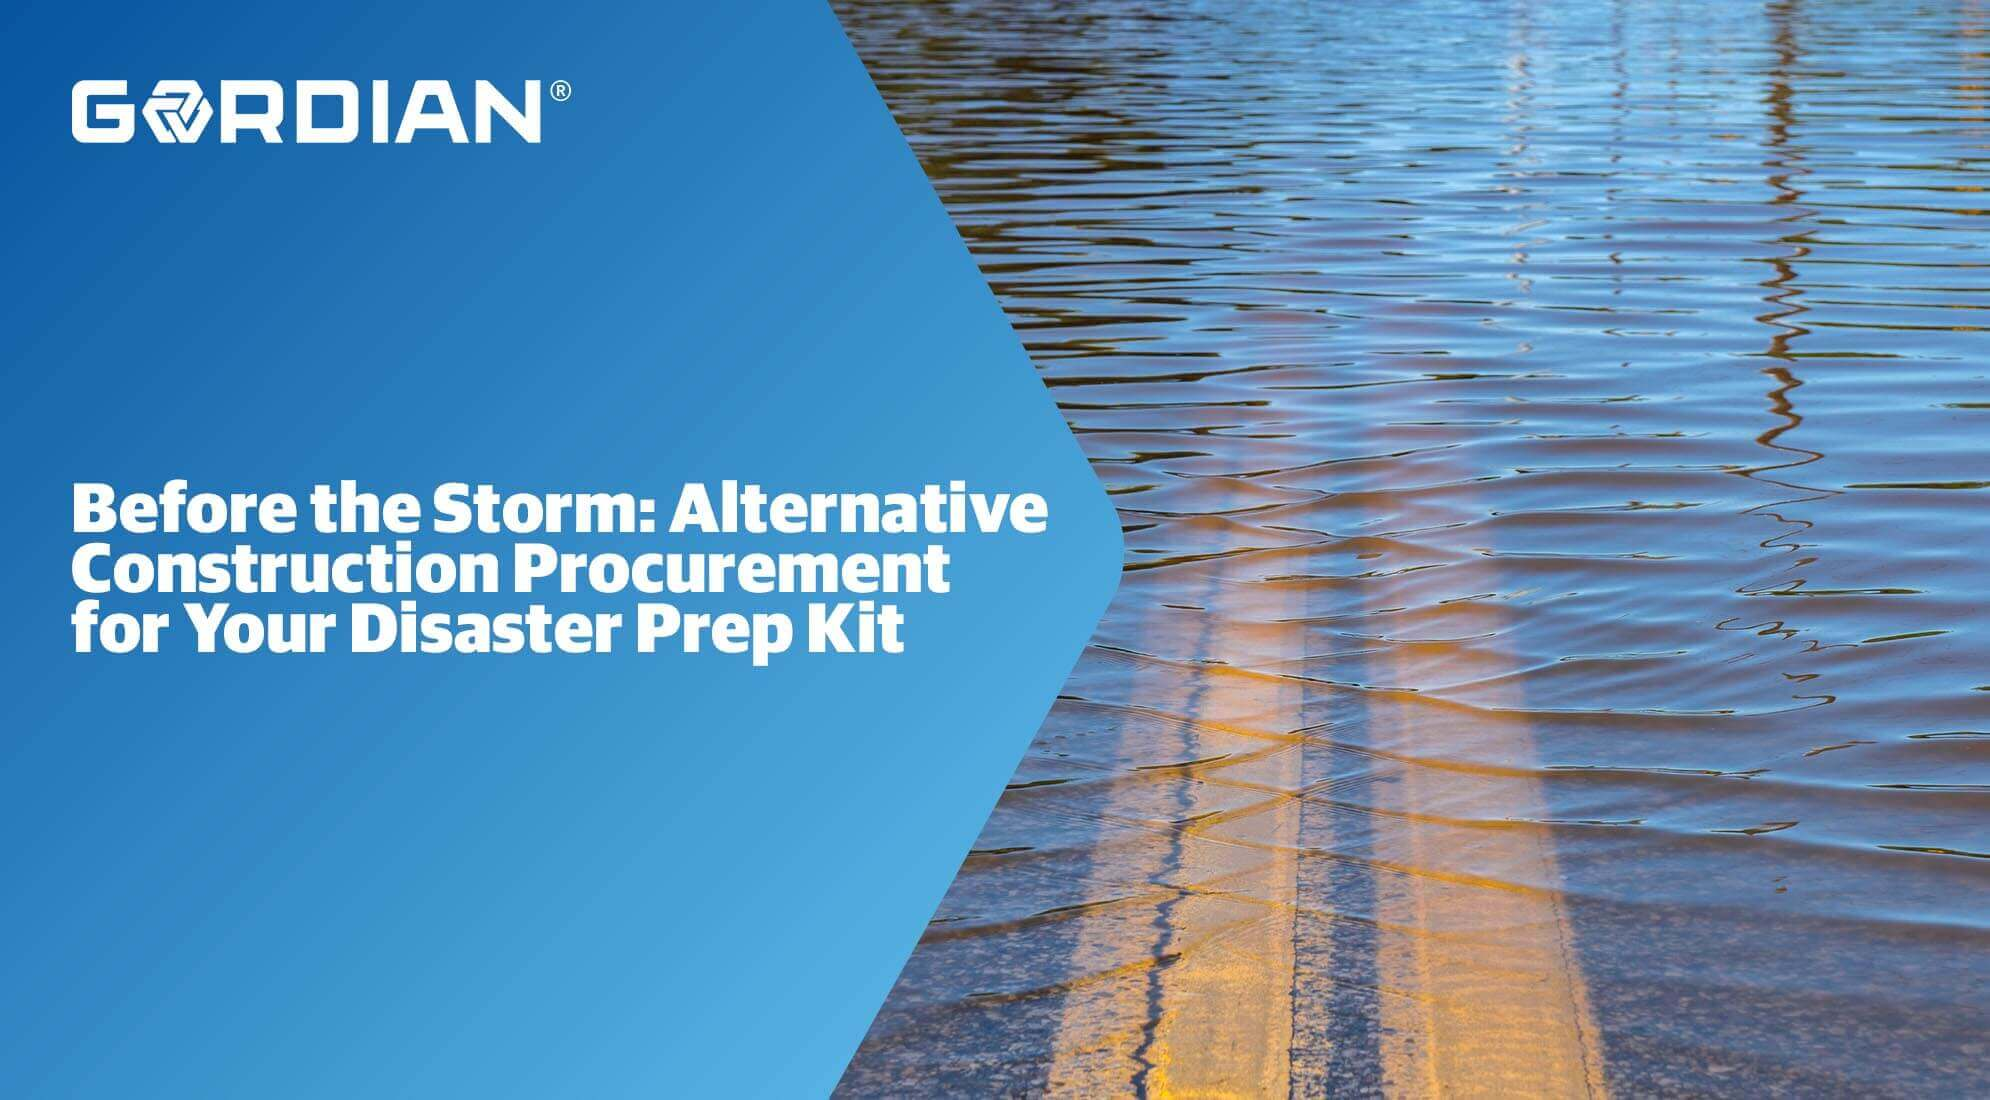 Before the Storm: Alternative Construction Procurement for Your Disaster Prep Kit 1